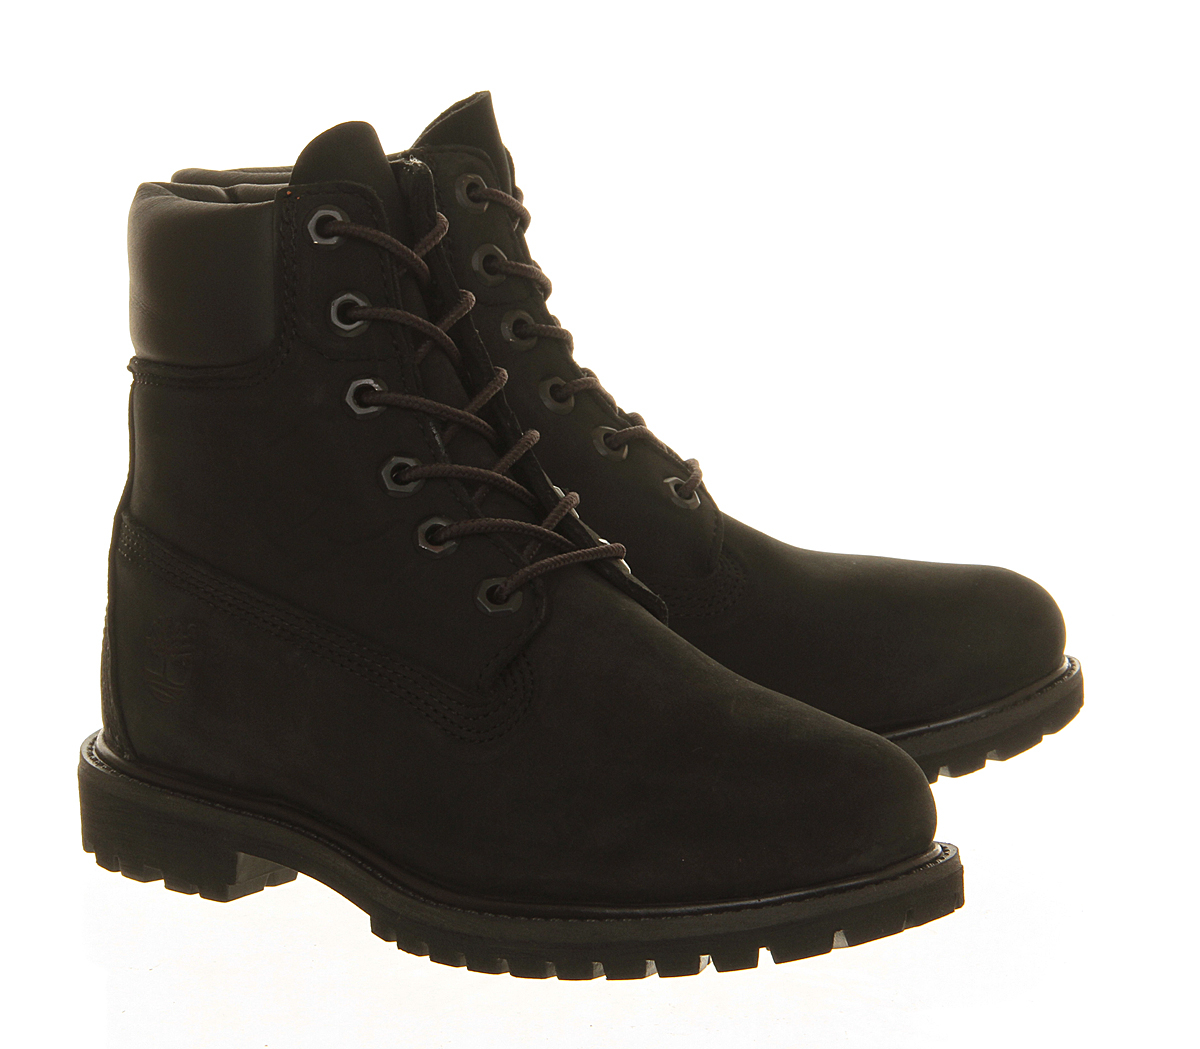 Simple Buy Timberland Womens Black Glancy 6 Inch Boots At Hurleys